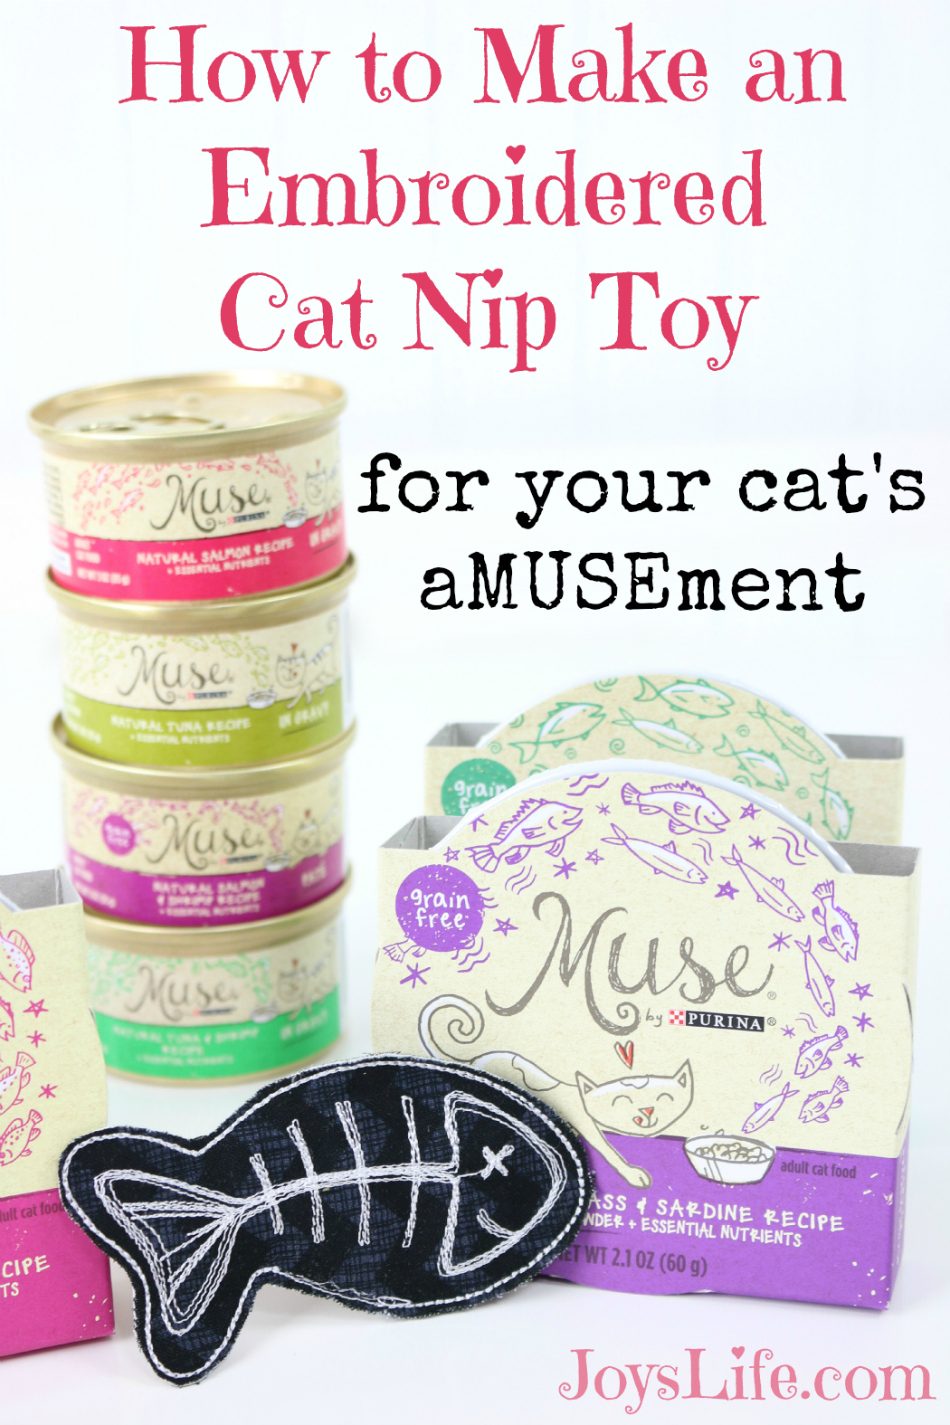 How to Make an Embroidered Cat Nip Toy #MyCatMyMuse #ad